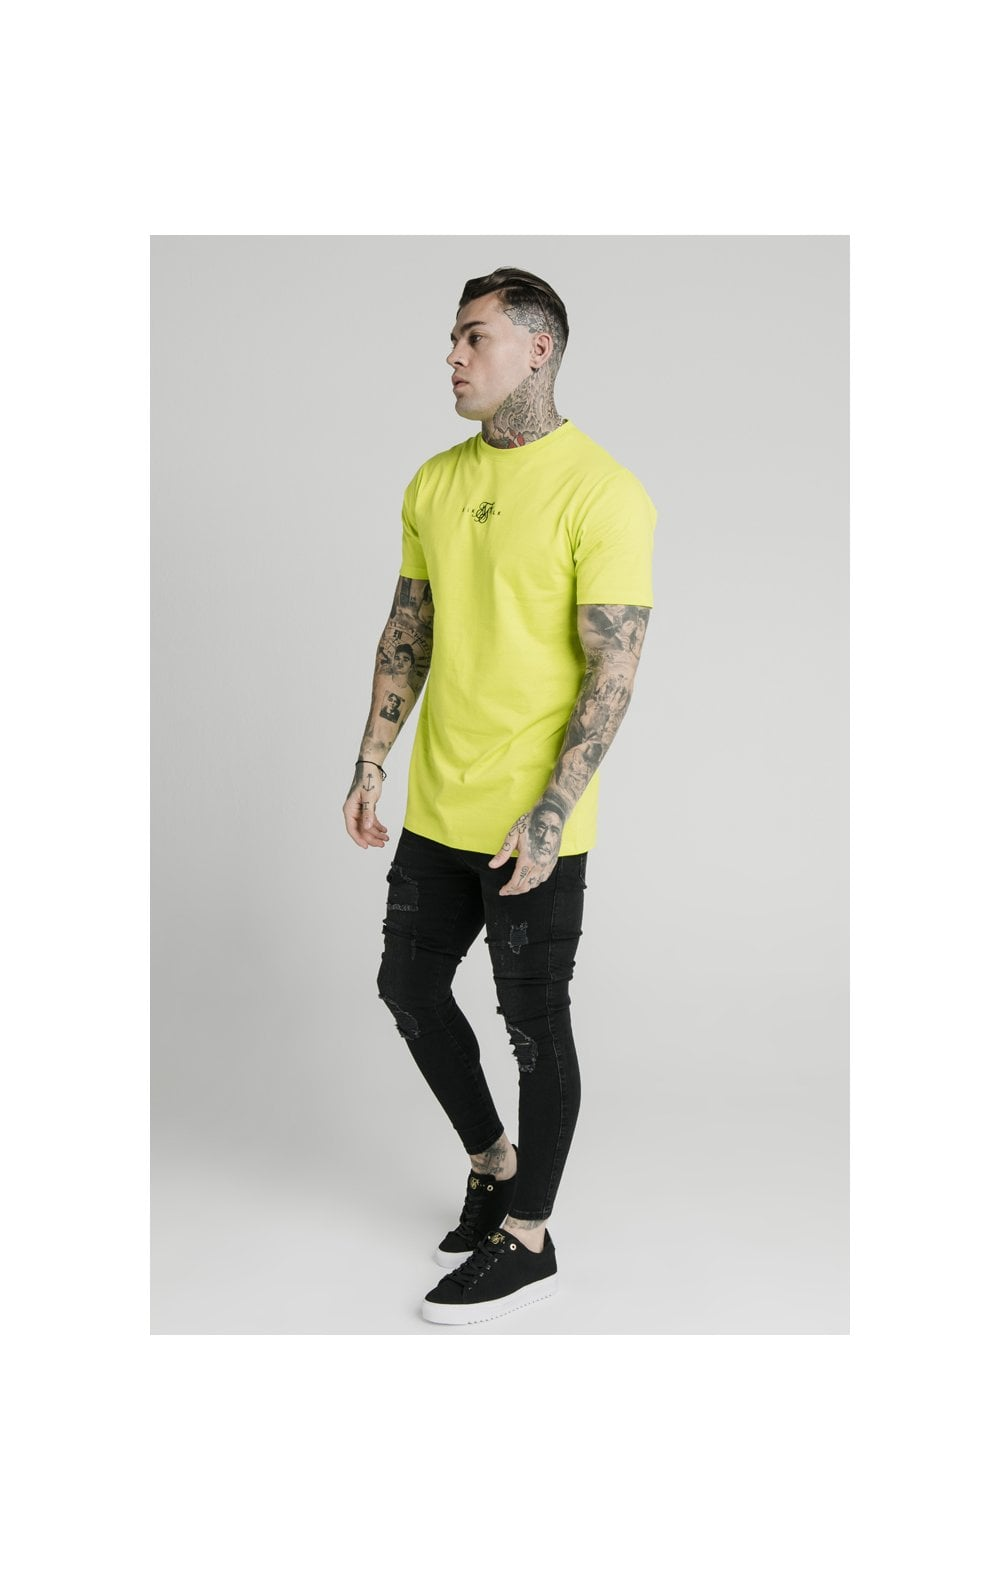 SikSilk S/S Square Hem Tee – Lime (2)